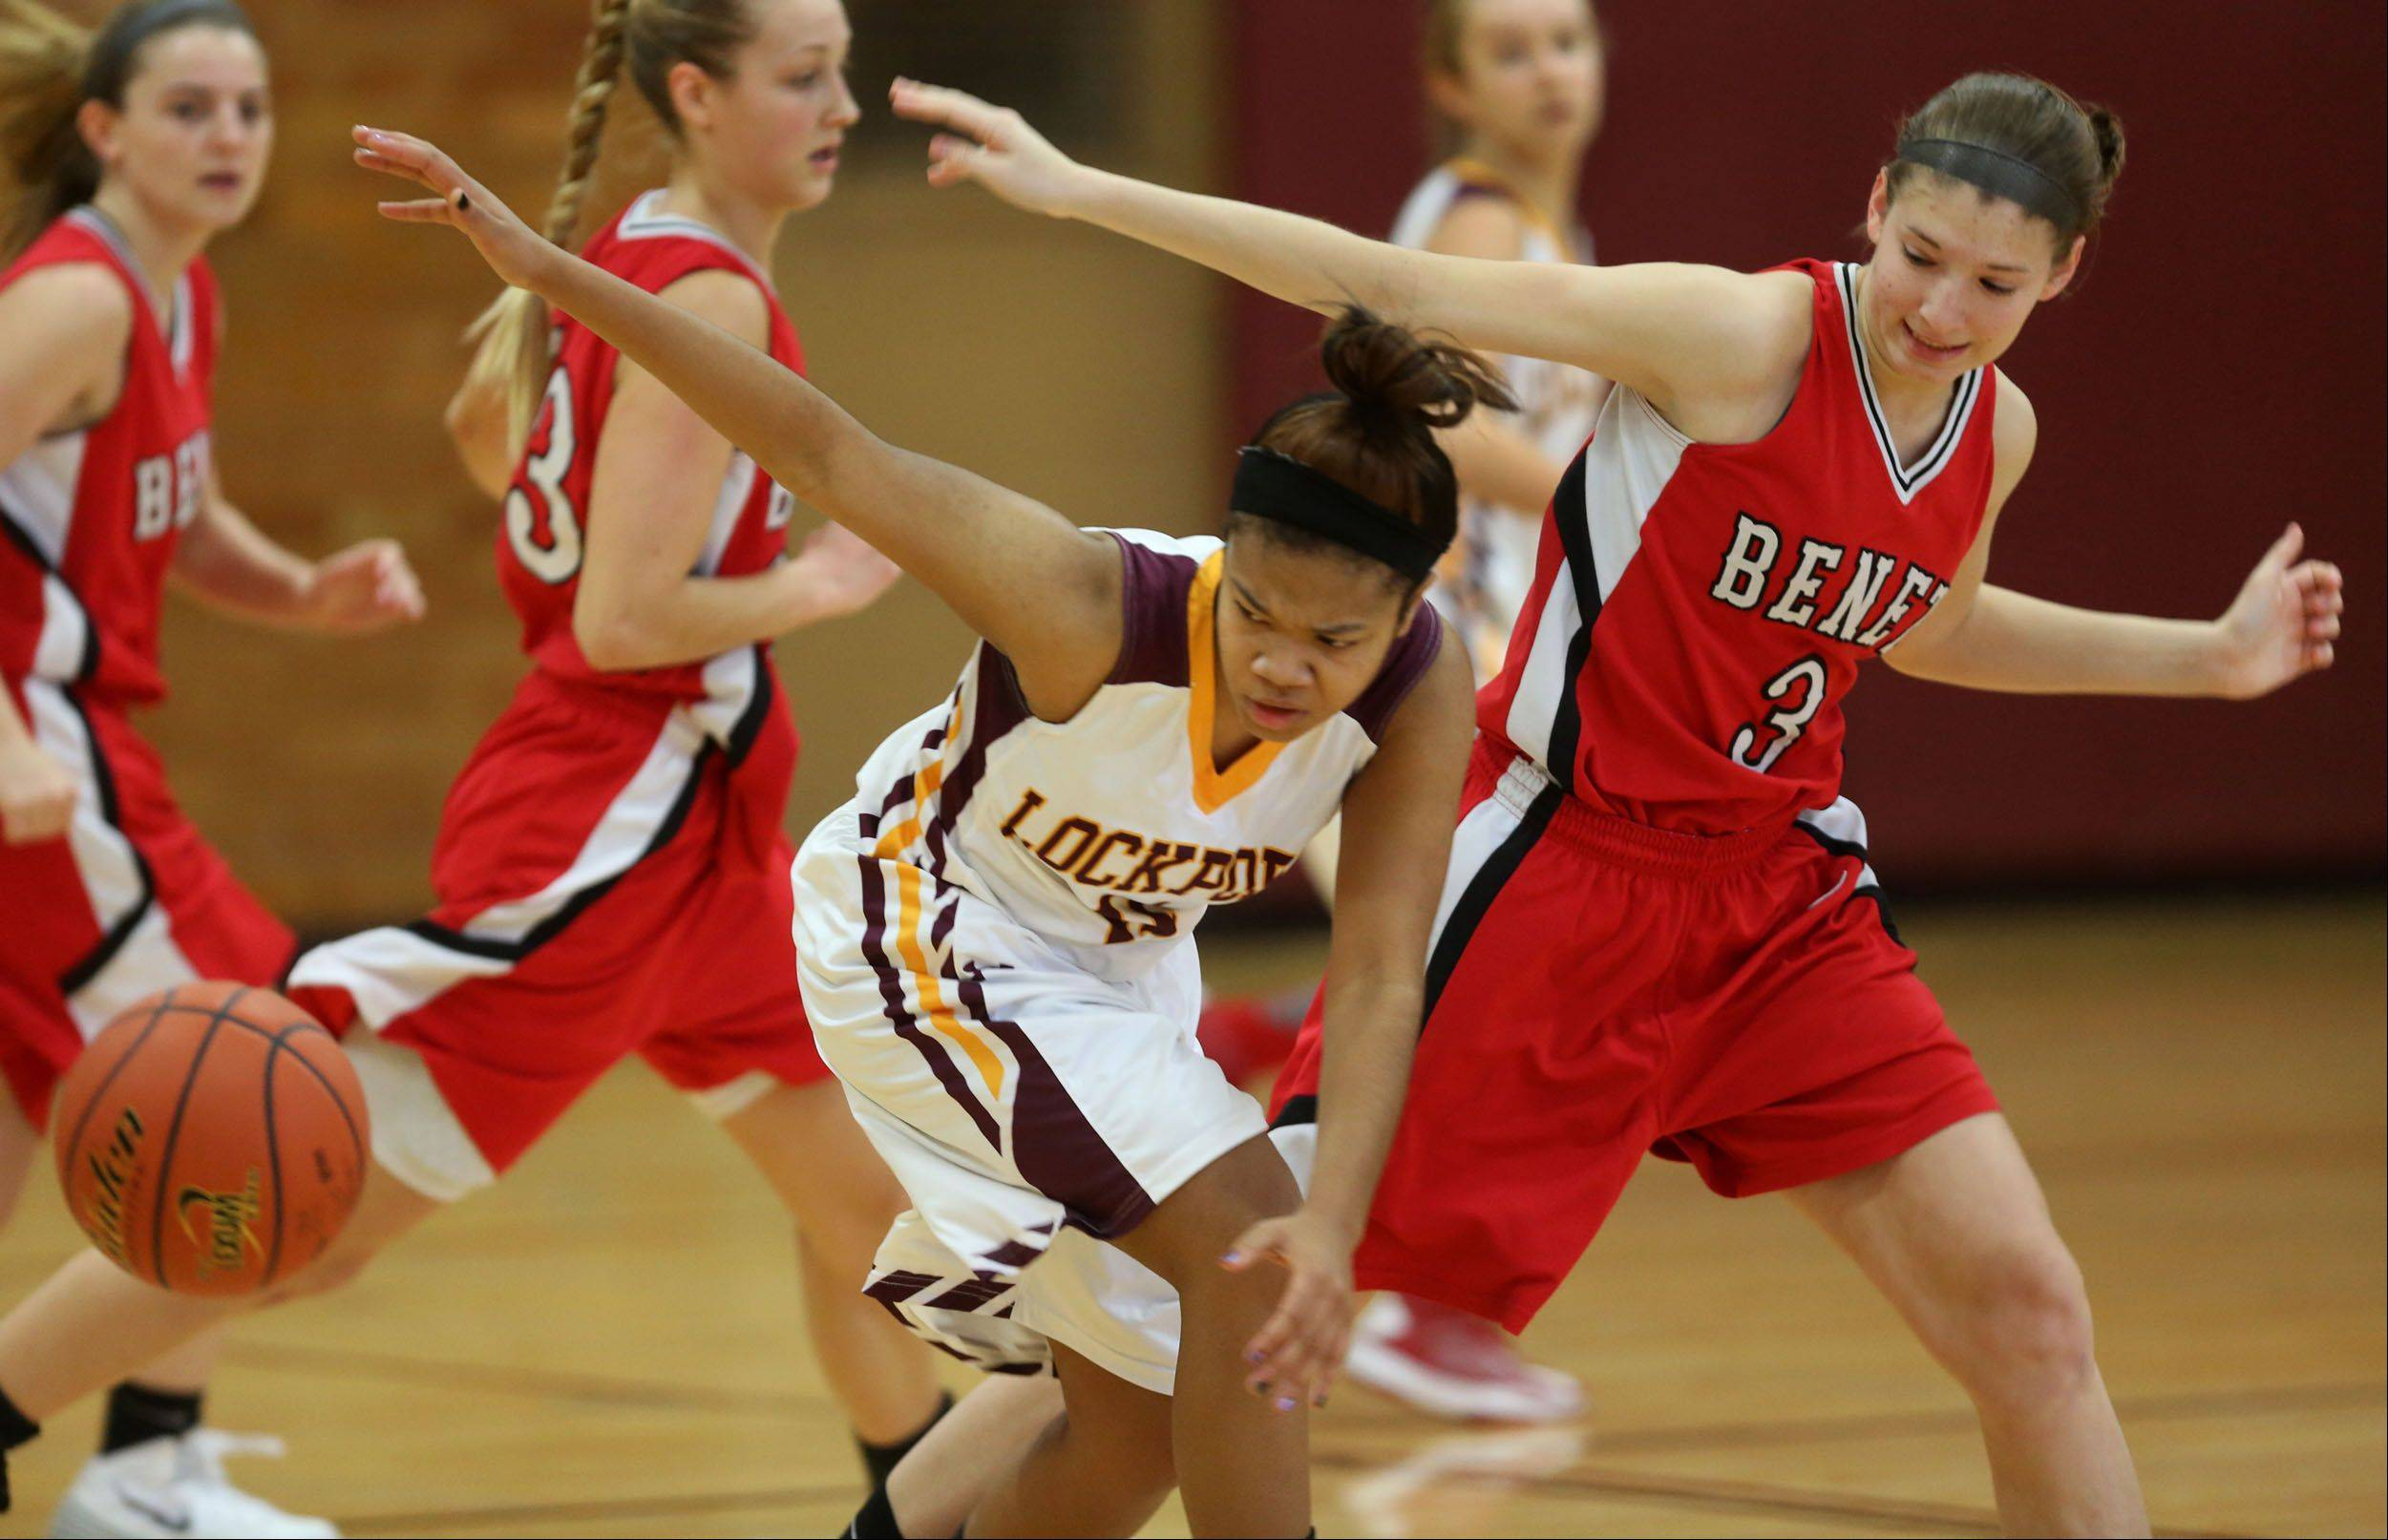 Benet's Emma Hlavin, right, eyes the ball against Lockport during girls basketball action.